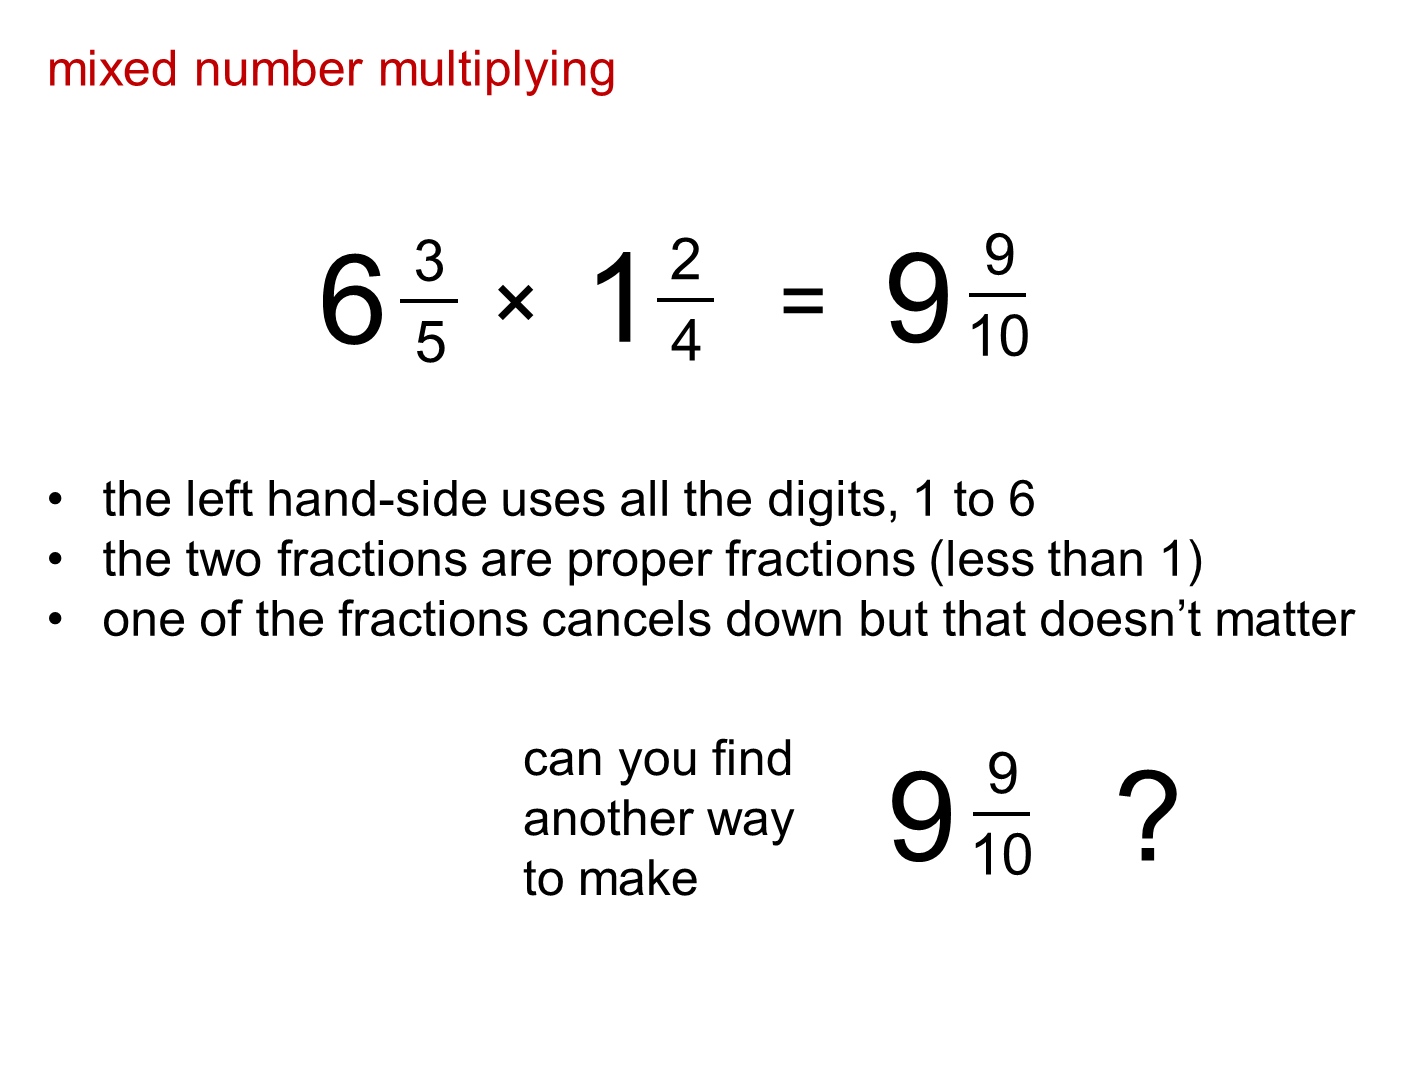 how to make a fraction into a mixed number